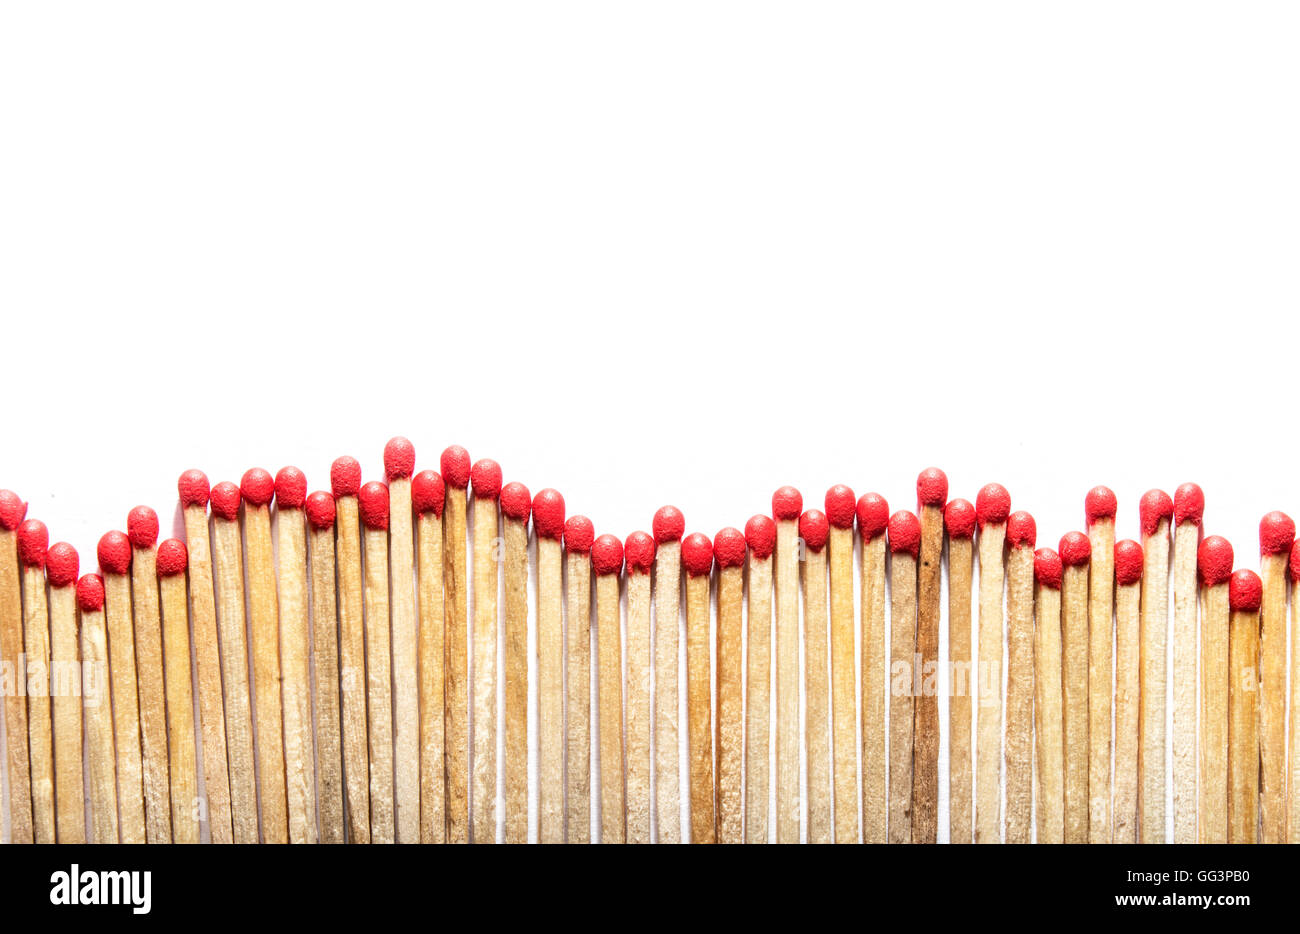 many matches at the bottom of a photo on white background - Stock Image